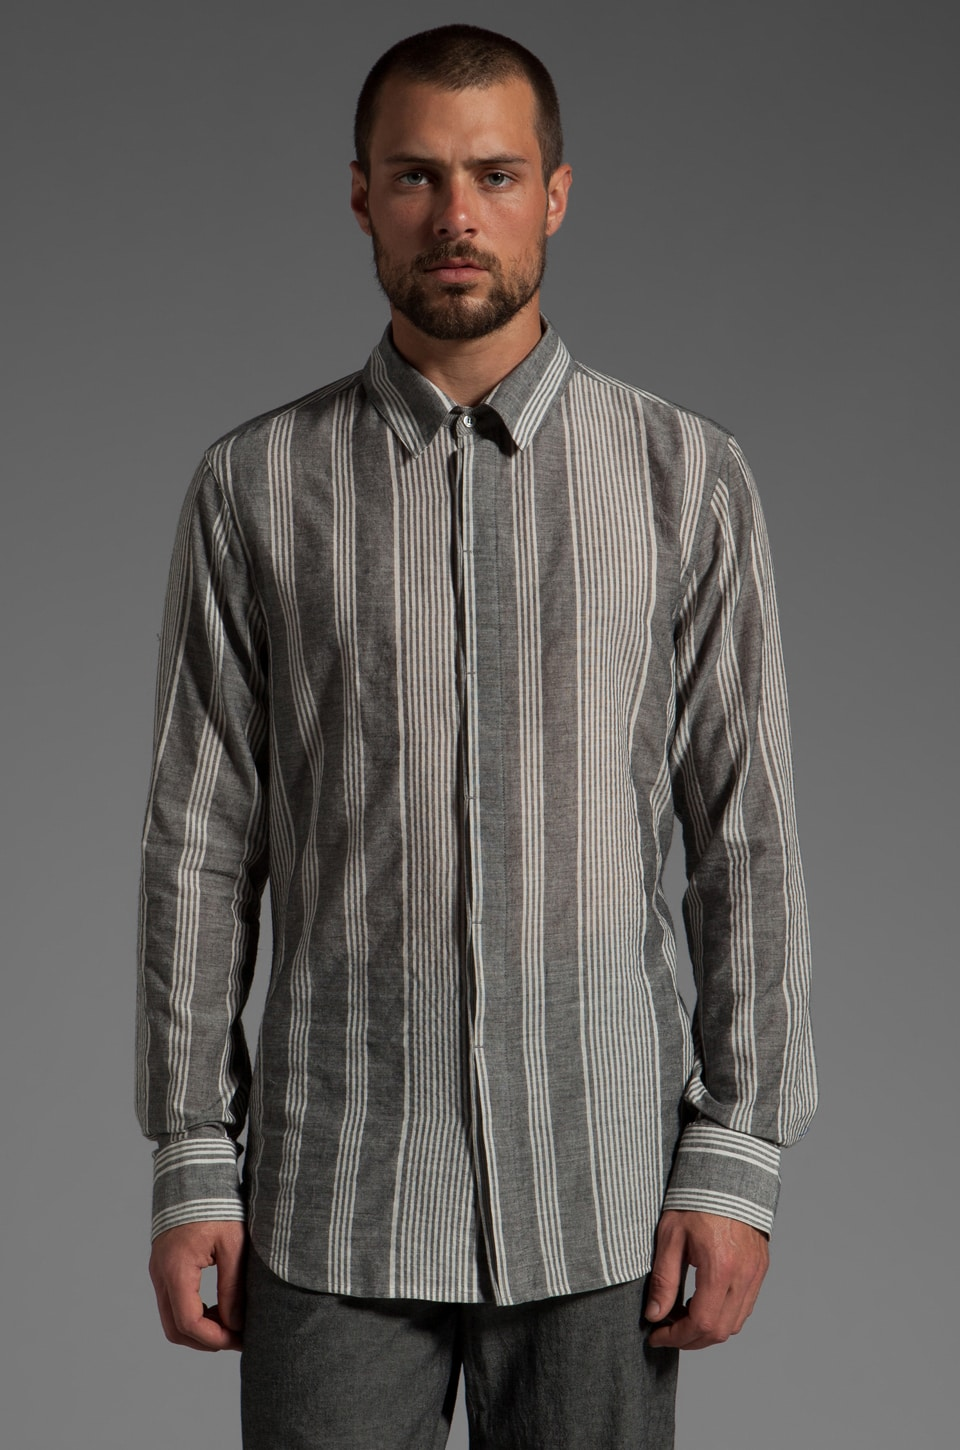 Nicholas K Tatom Shirt in Black